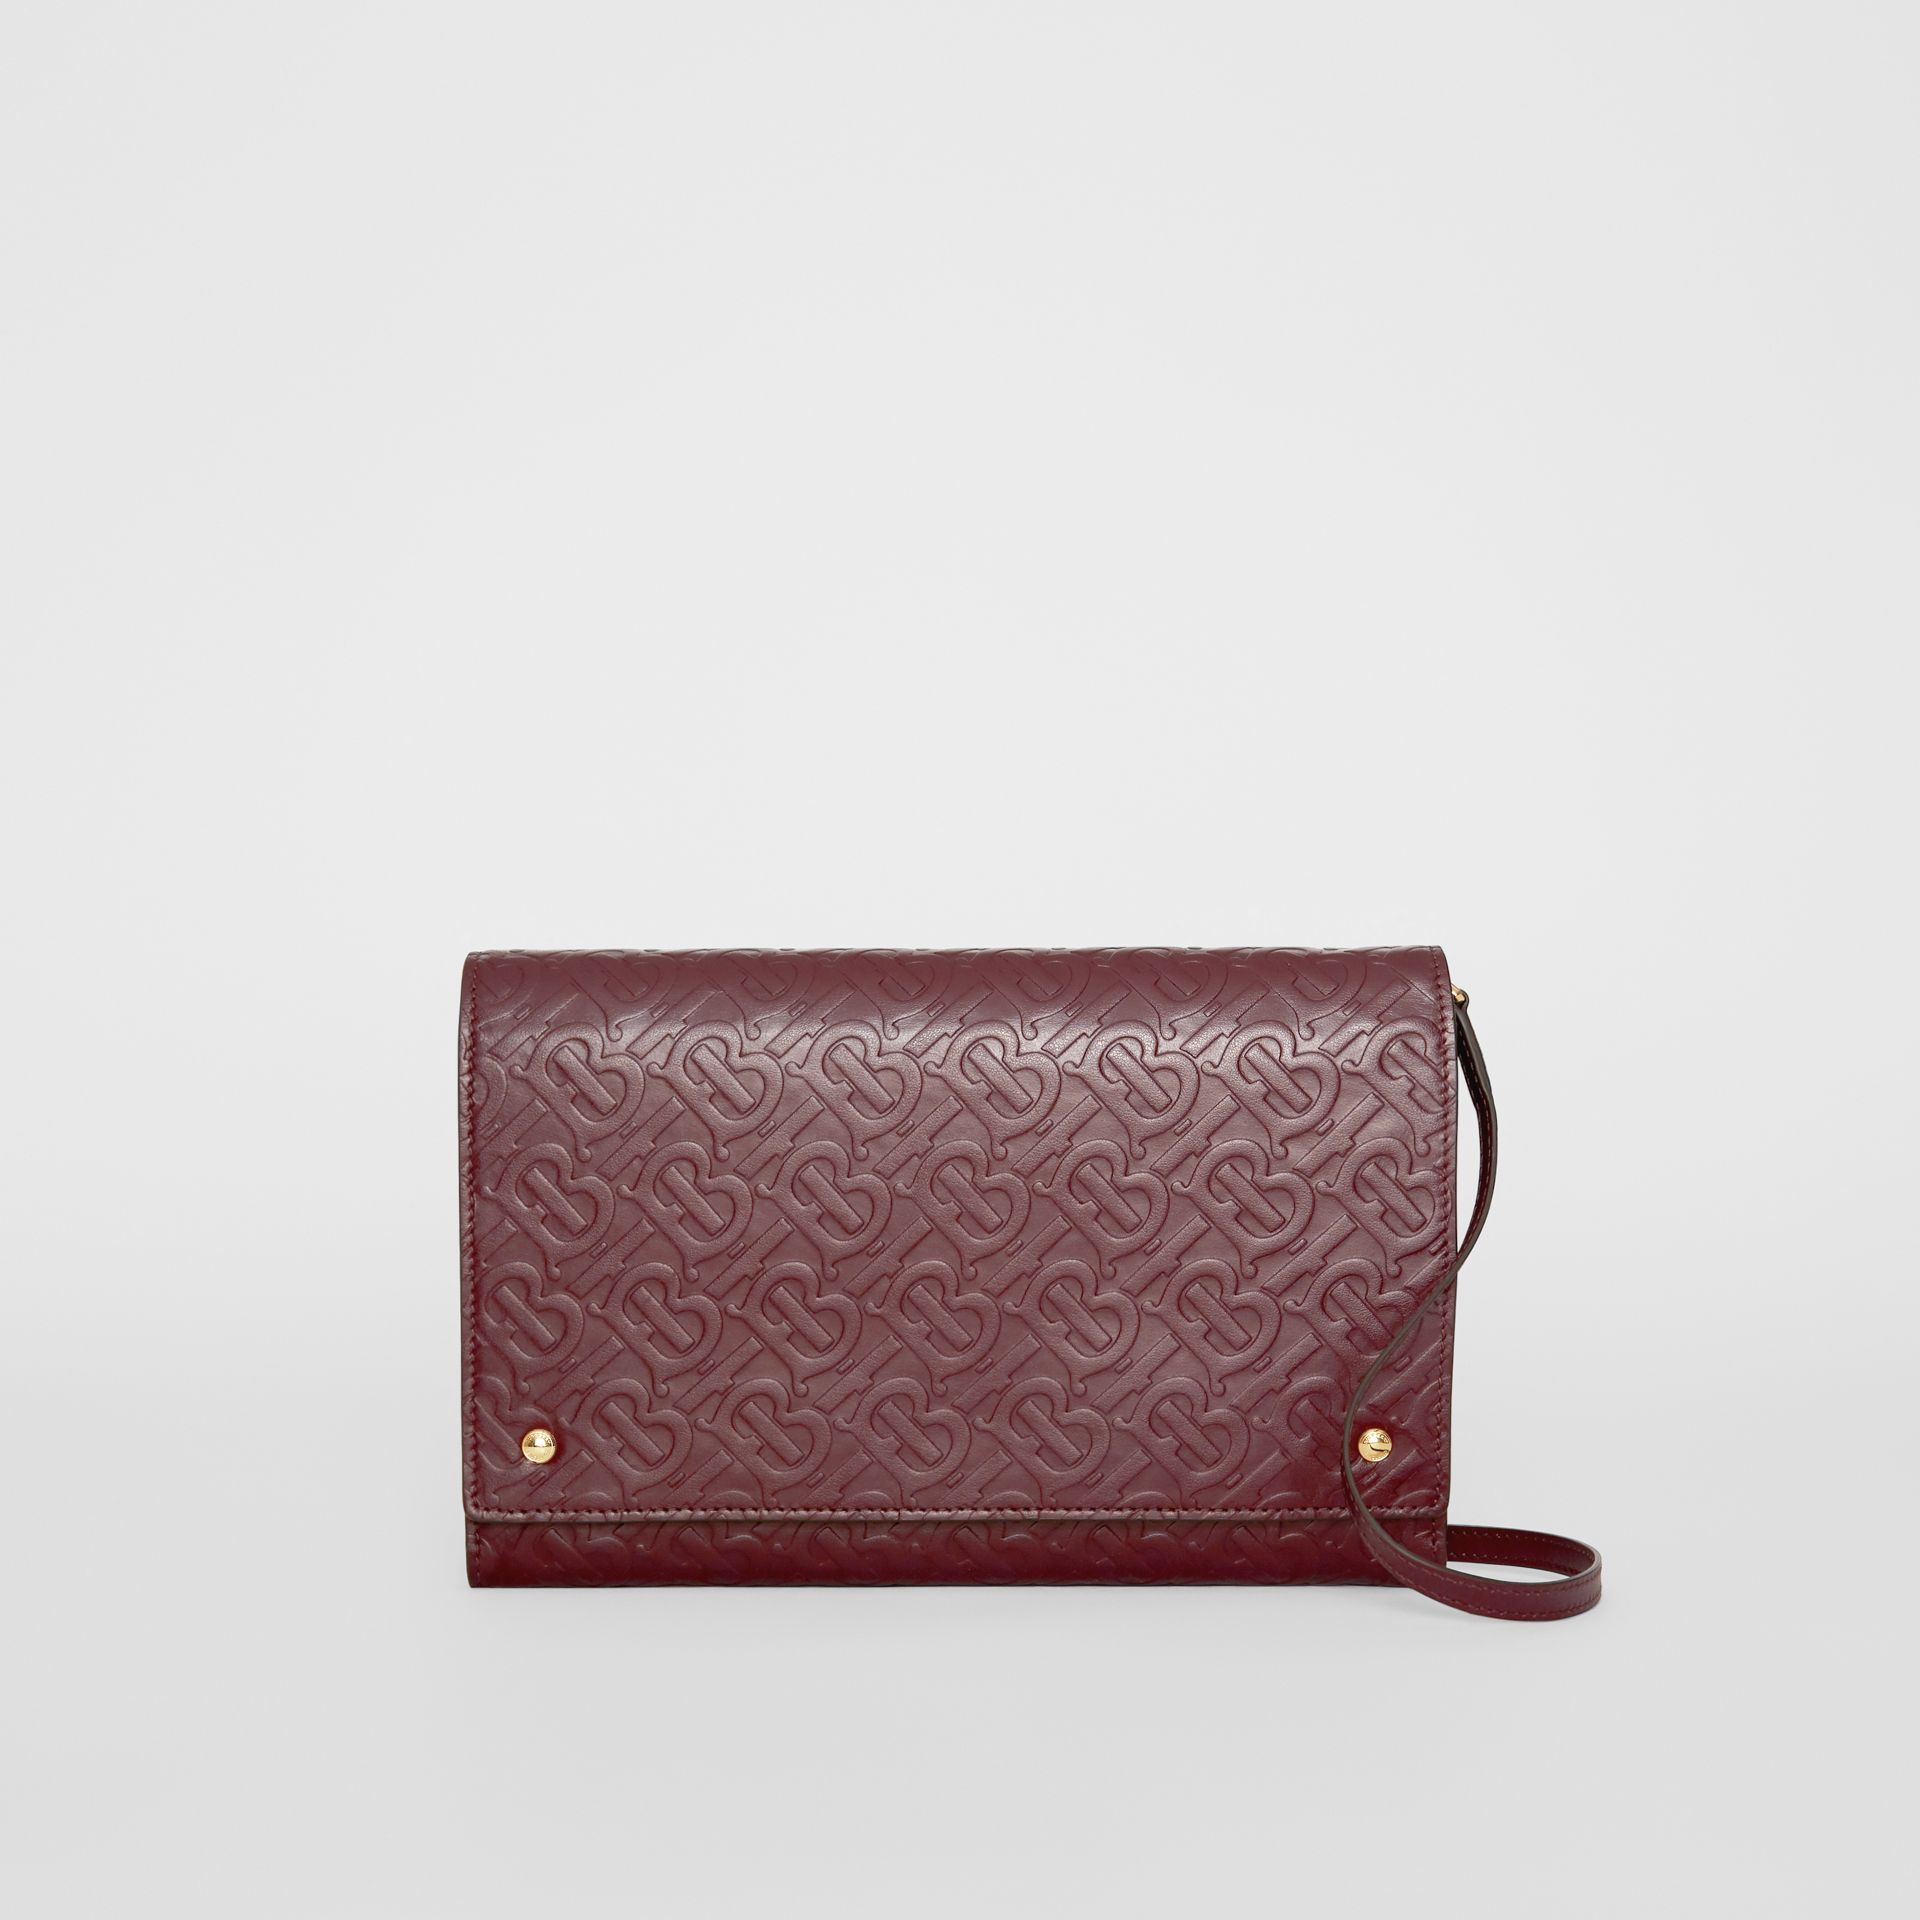 Monogram Leather Bag with Detachable Strap in Oxblood - Women | Burberry - gallery image 0